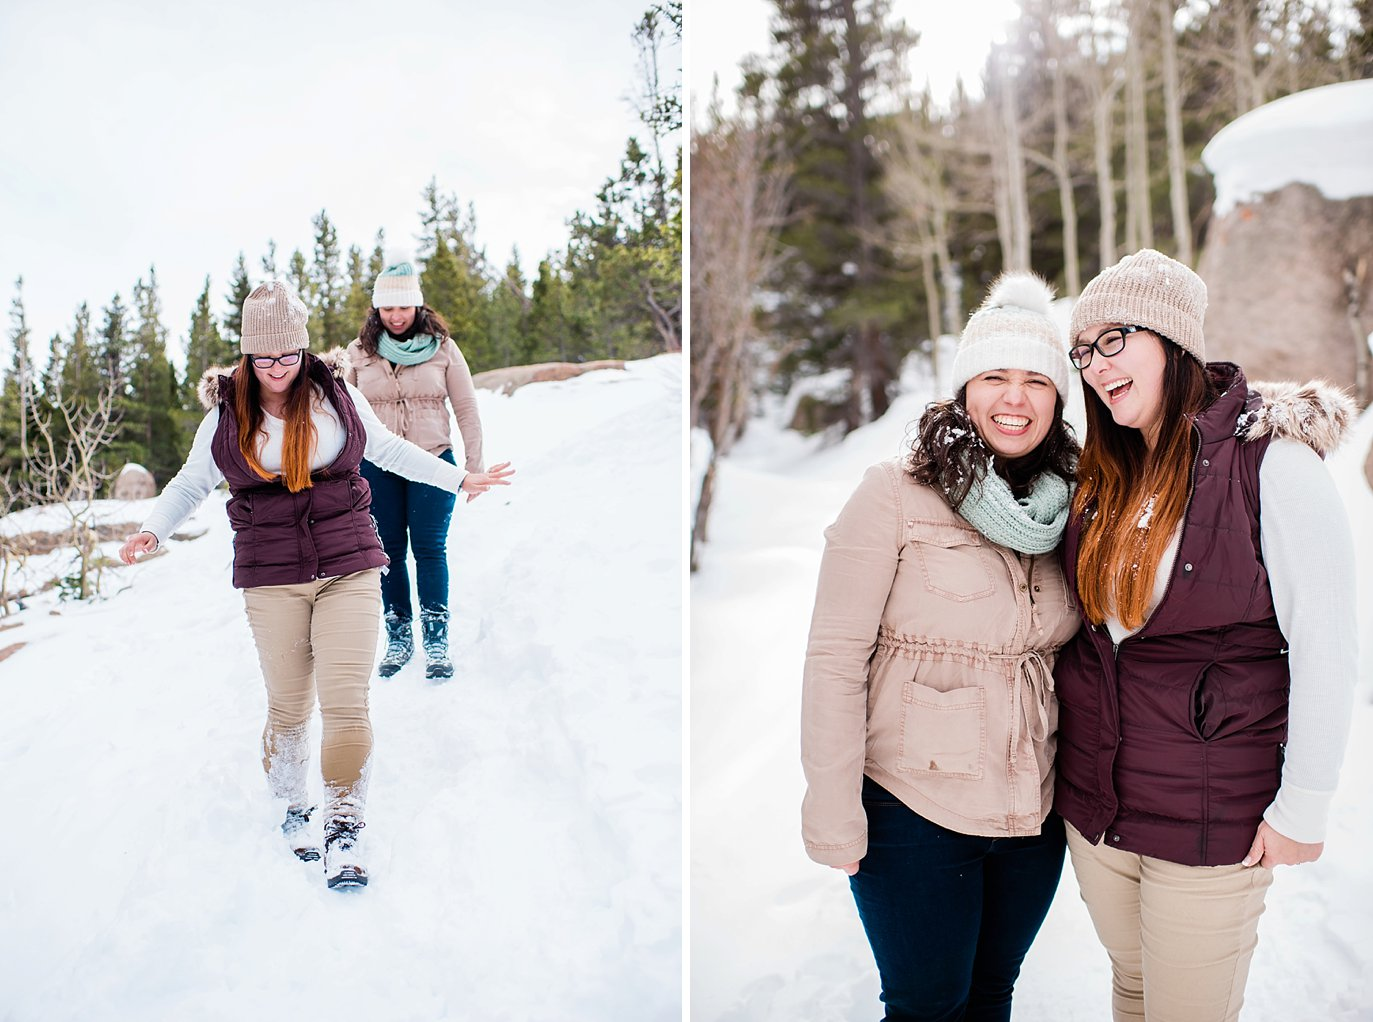 queer winter engagement Alberta Falls Rocky Mountain National Park winter hiking engagement by queer engagement photographer Jennie Crate, Photographer